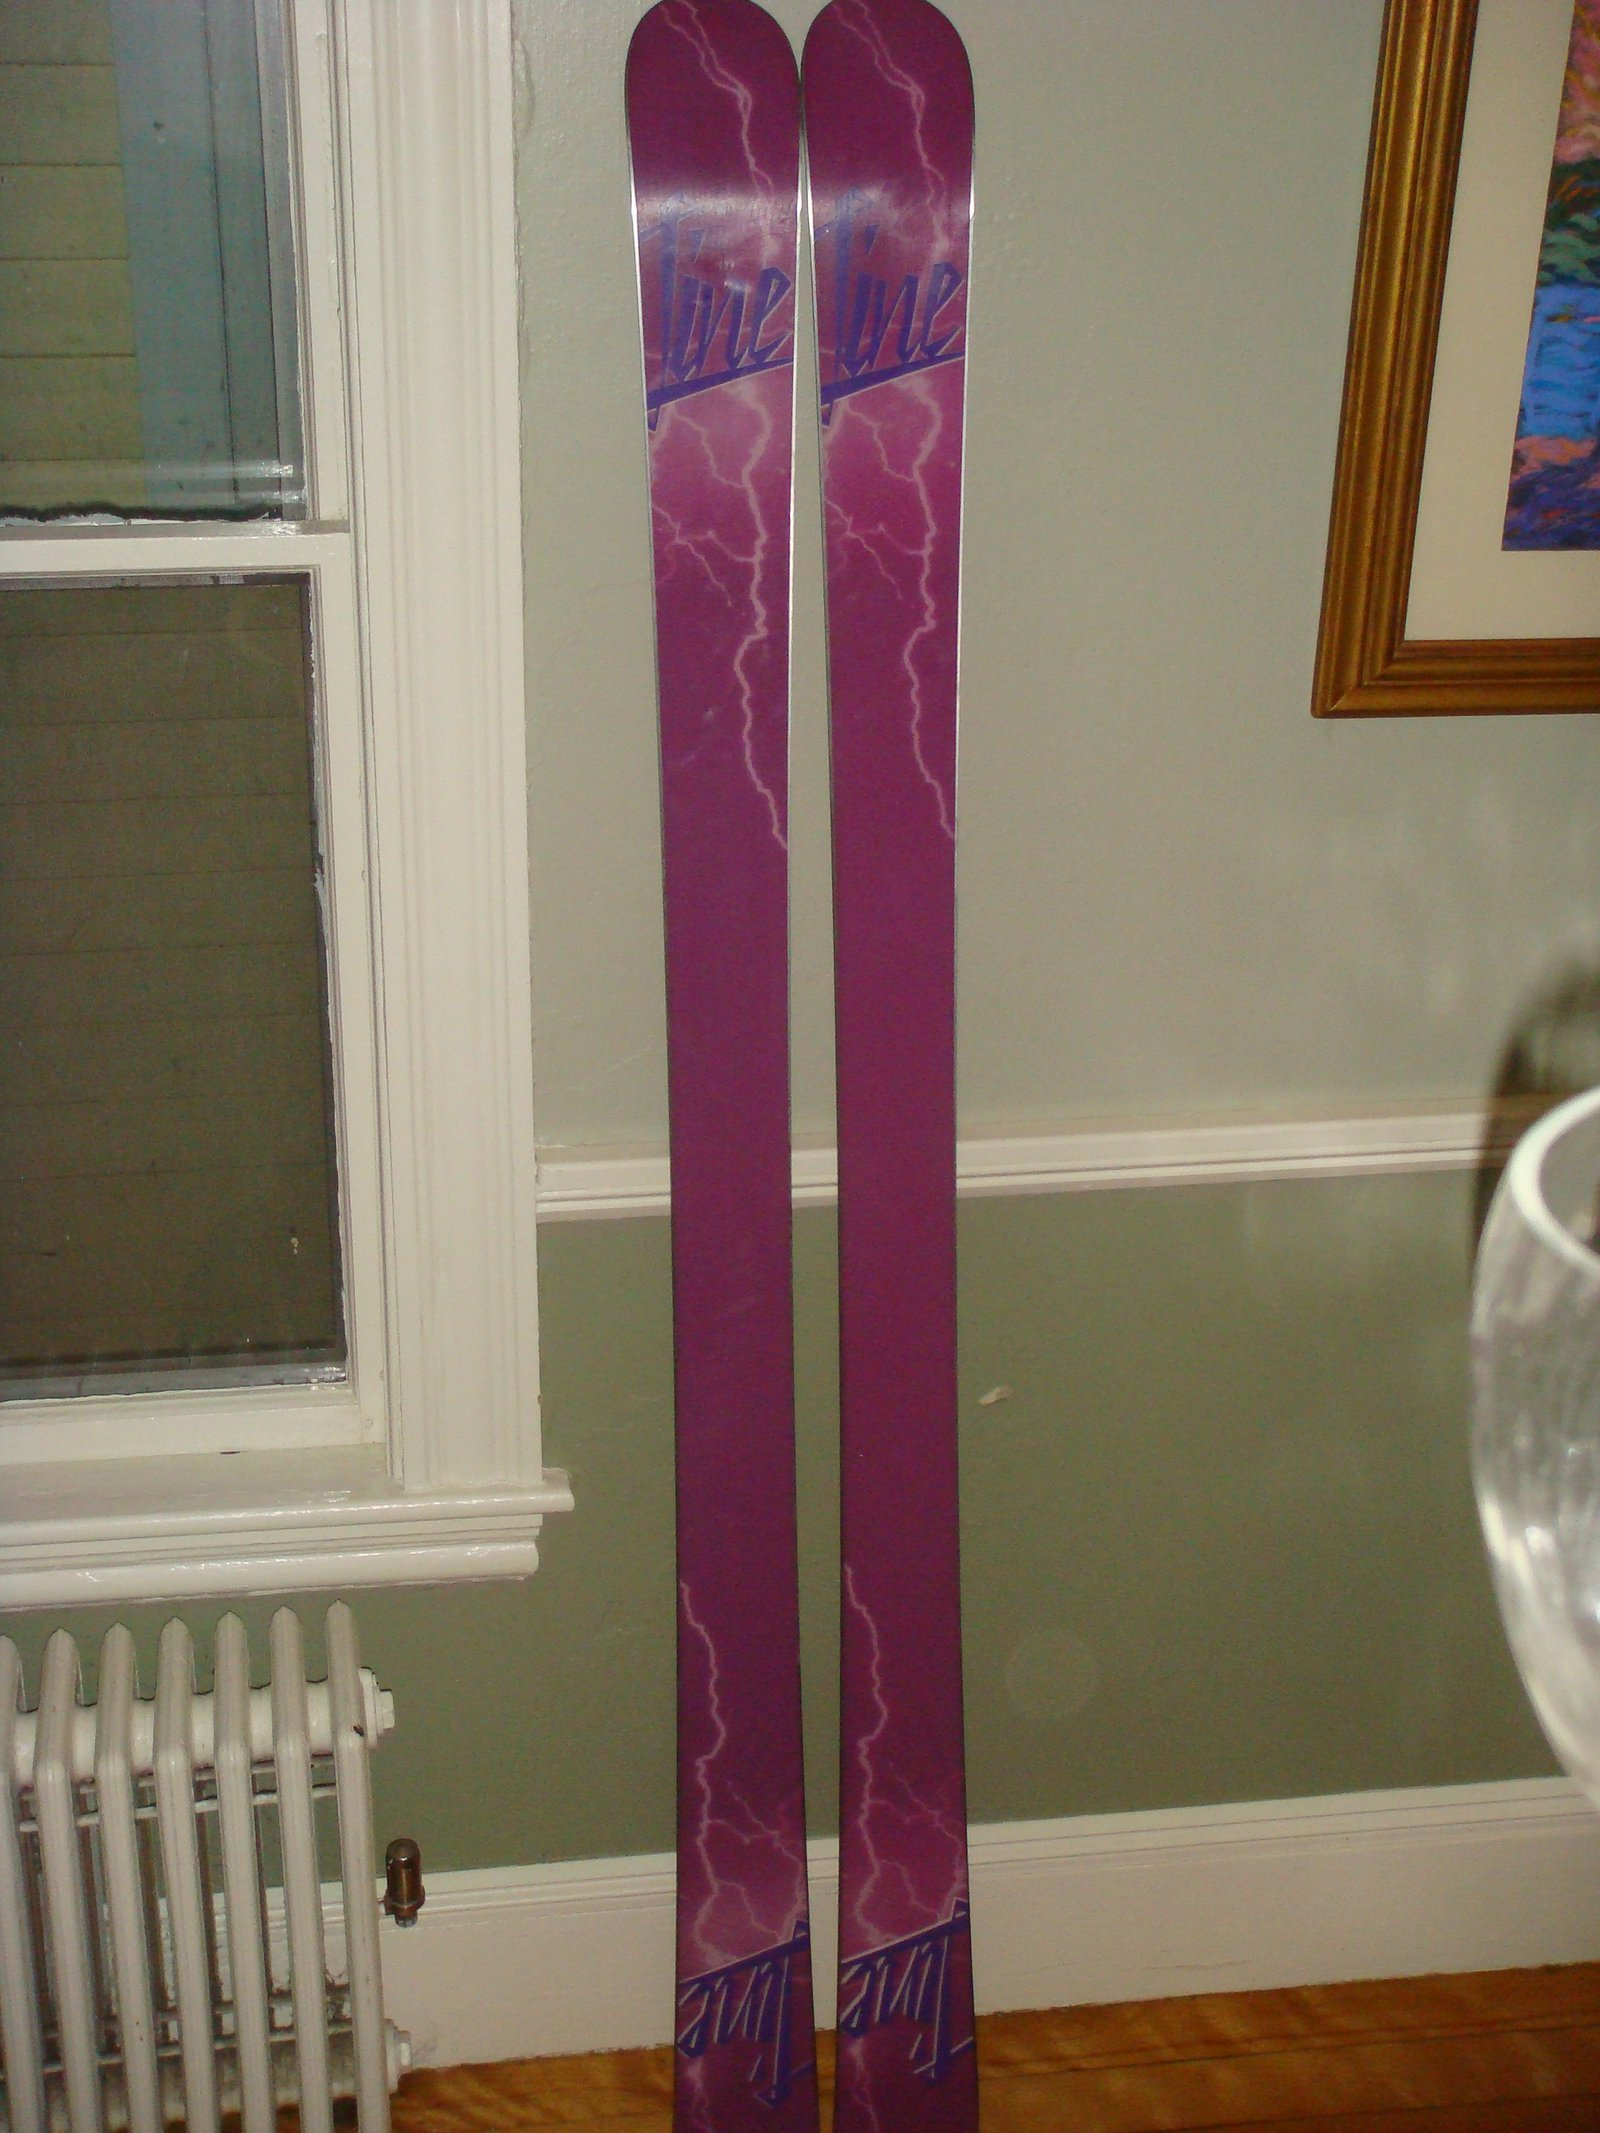 New skis numero dos (base)